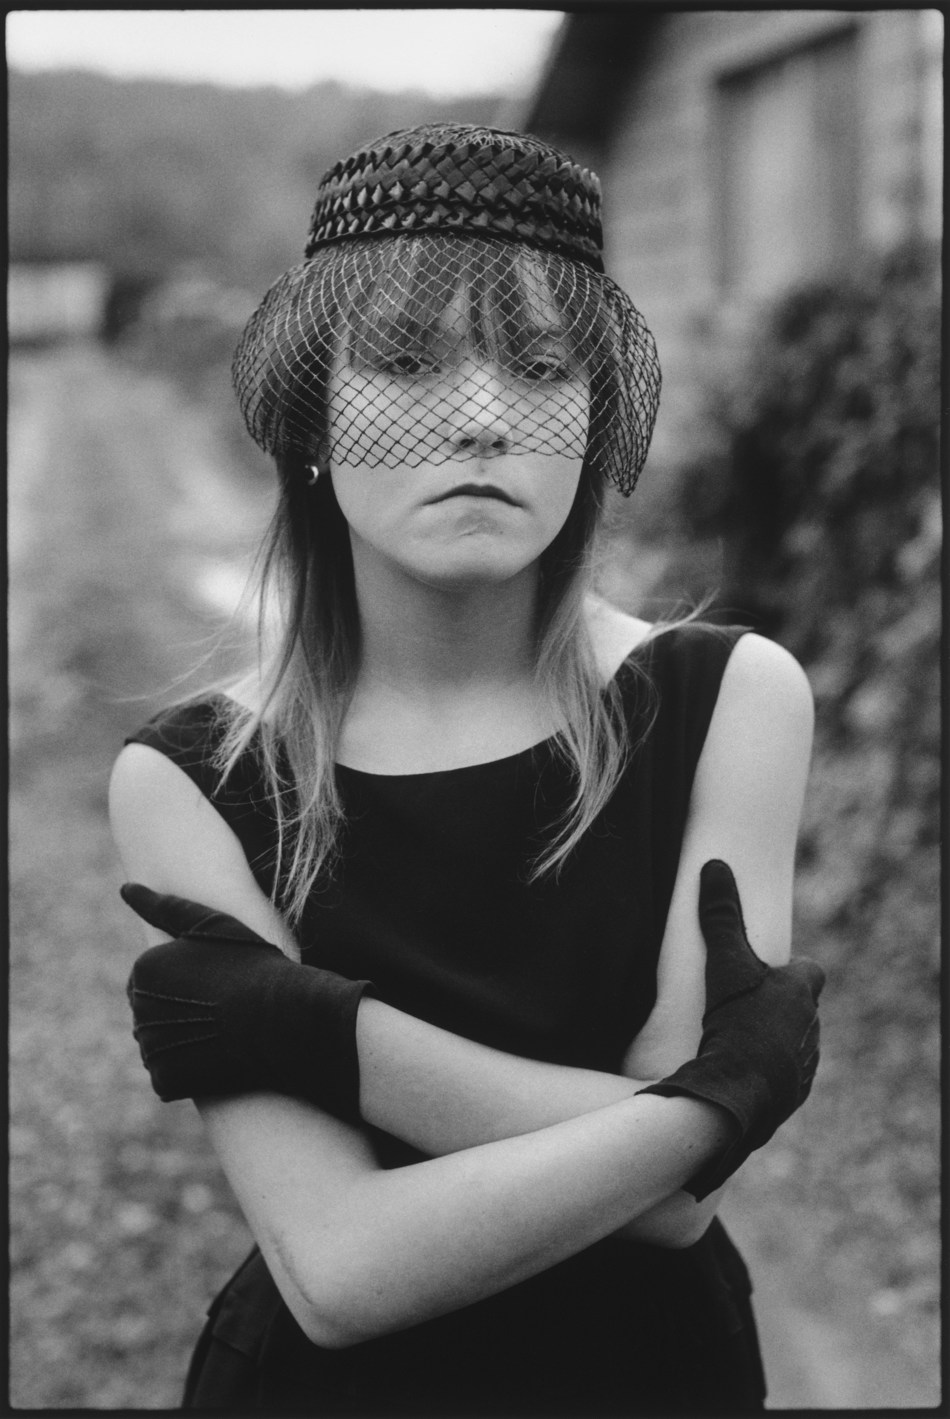 """Groundbreaking exhibition of the thirty-year photo documentary of """"Tiny"""", the subject of acclaimed street photojournalist Mary Ellen Mark, ushers in the opening of Museum of Street Culture at Encore Park in Dallas, TX on October 1. Photo Credit Copyright © Mary Ellen Mark."""